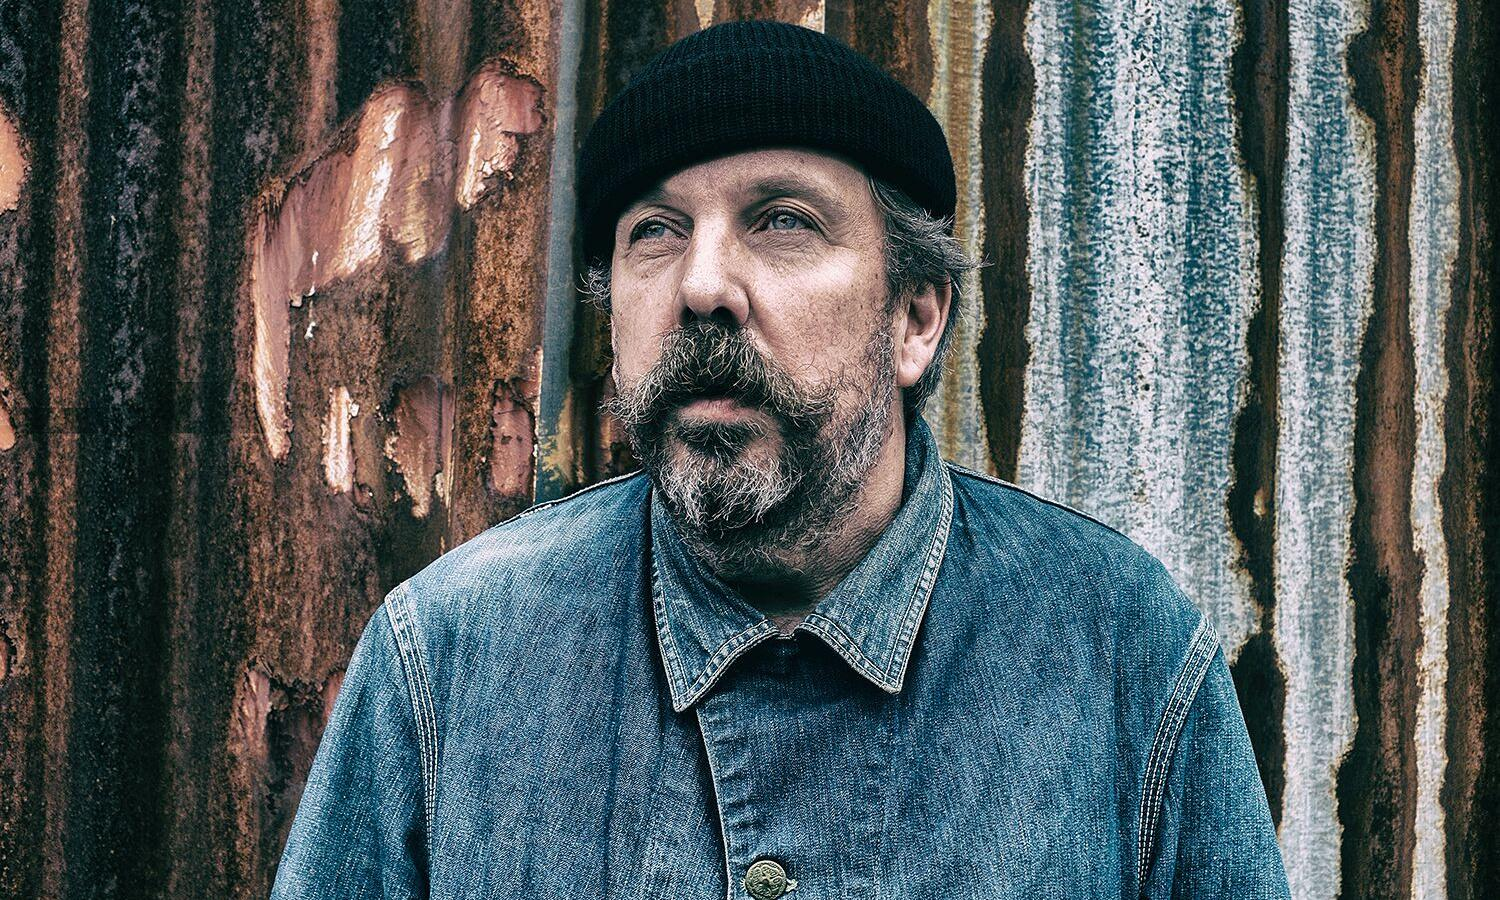 'A wonderfully creative DJ': readers' tributes to Andrew Weatherall